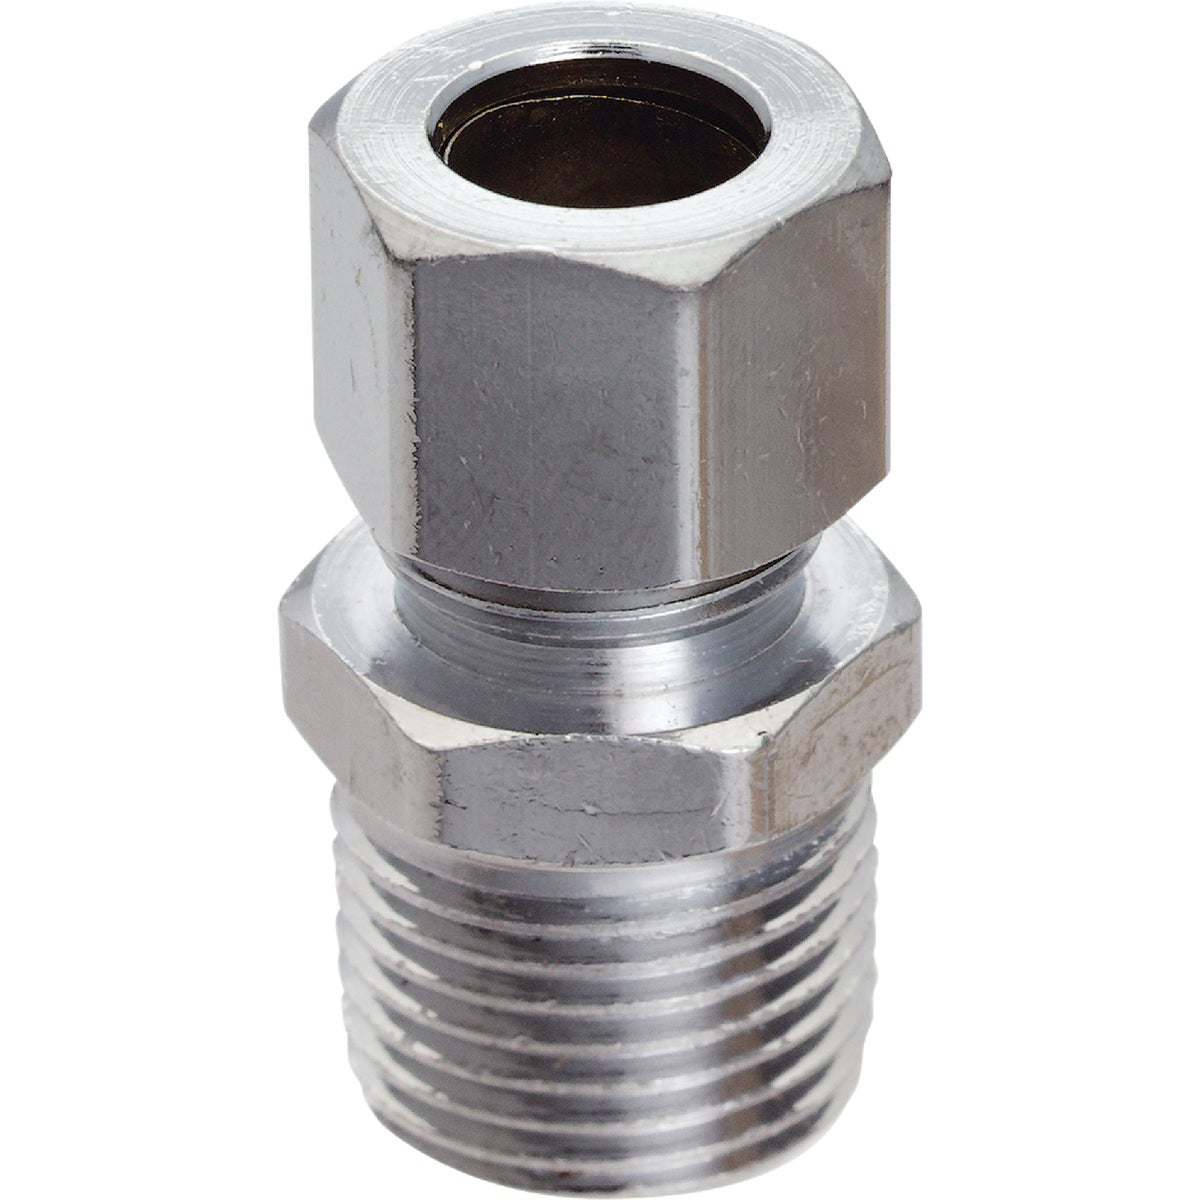 1/2MIPX3/8OD STRT UNION - 455956 by Plumb Pak/keeney Mfg